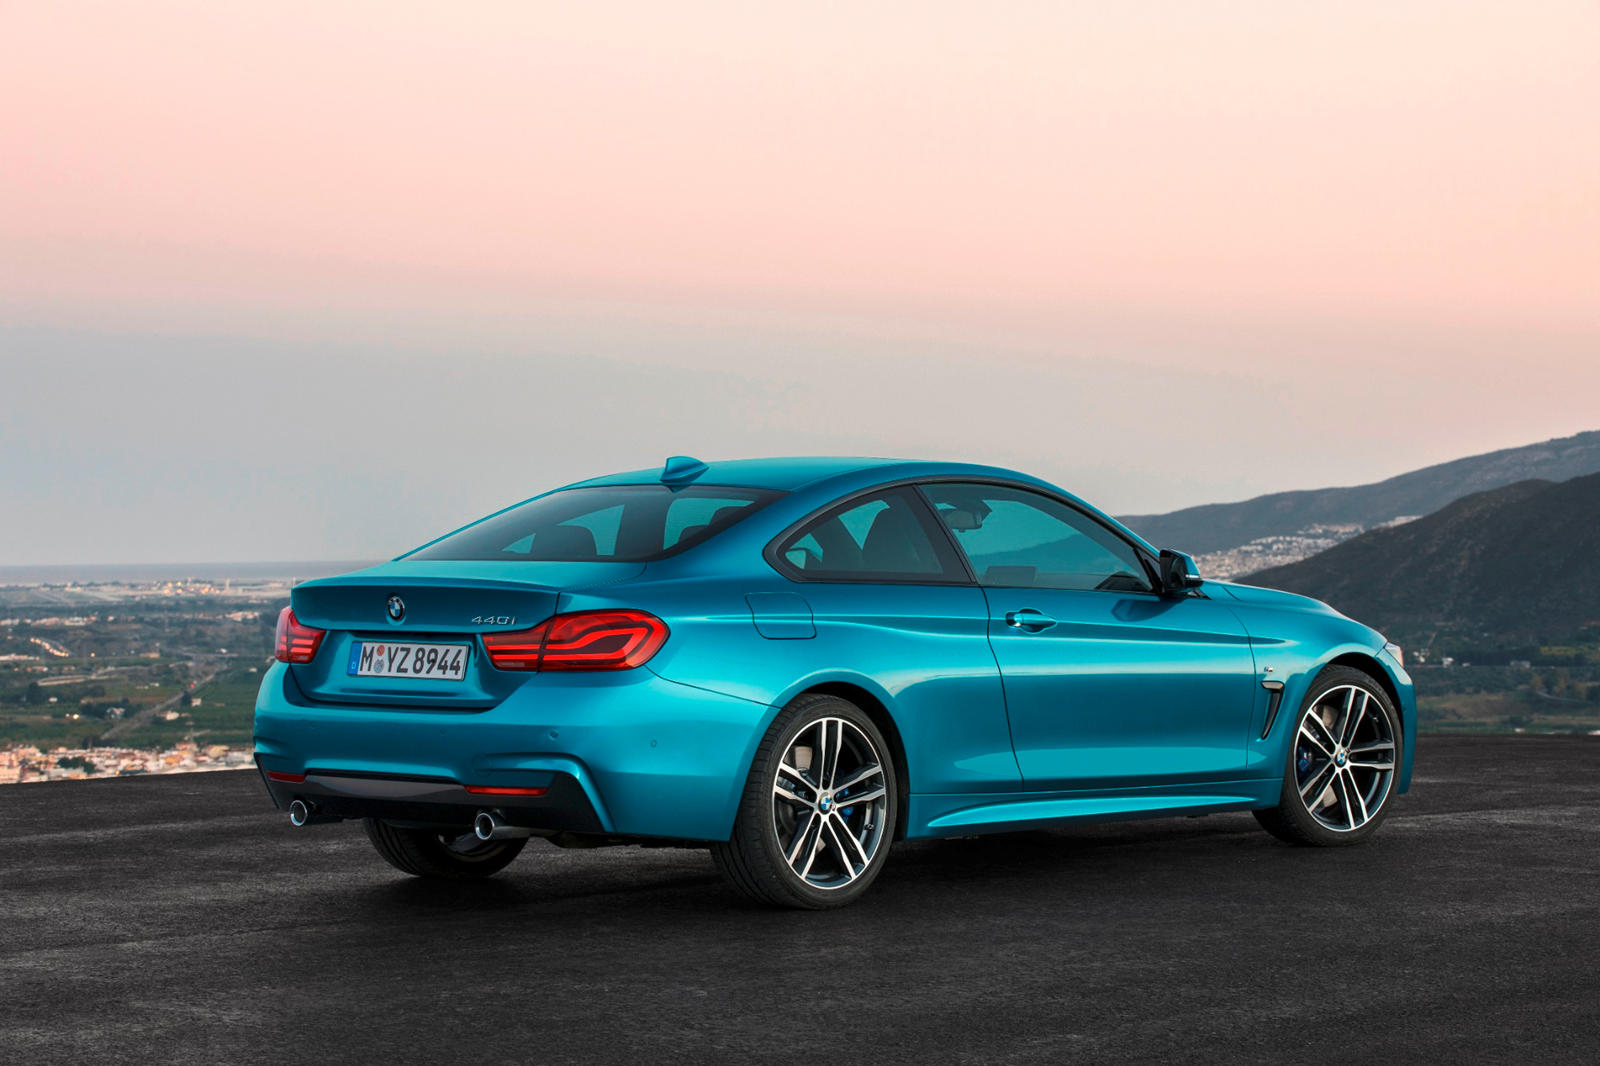 2020 BMW 4 Series Coupe rear three quarter view